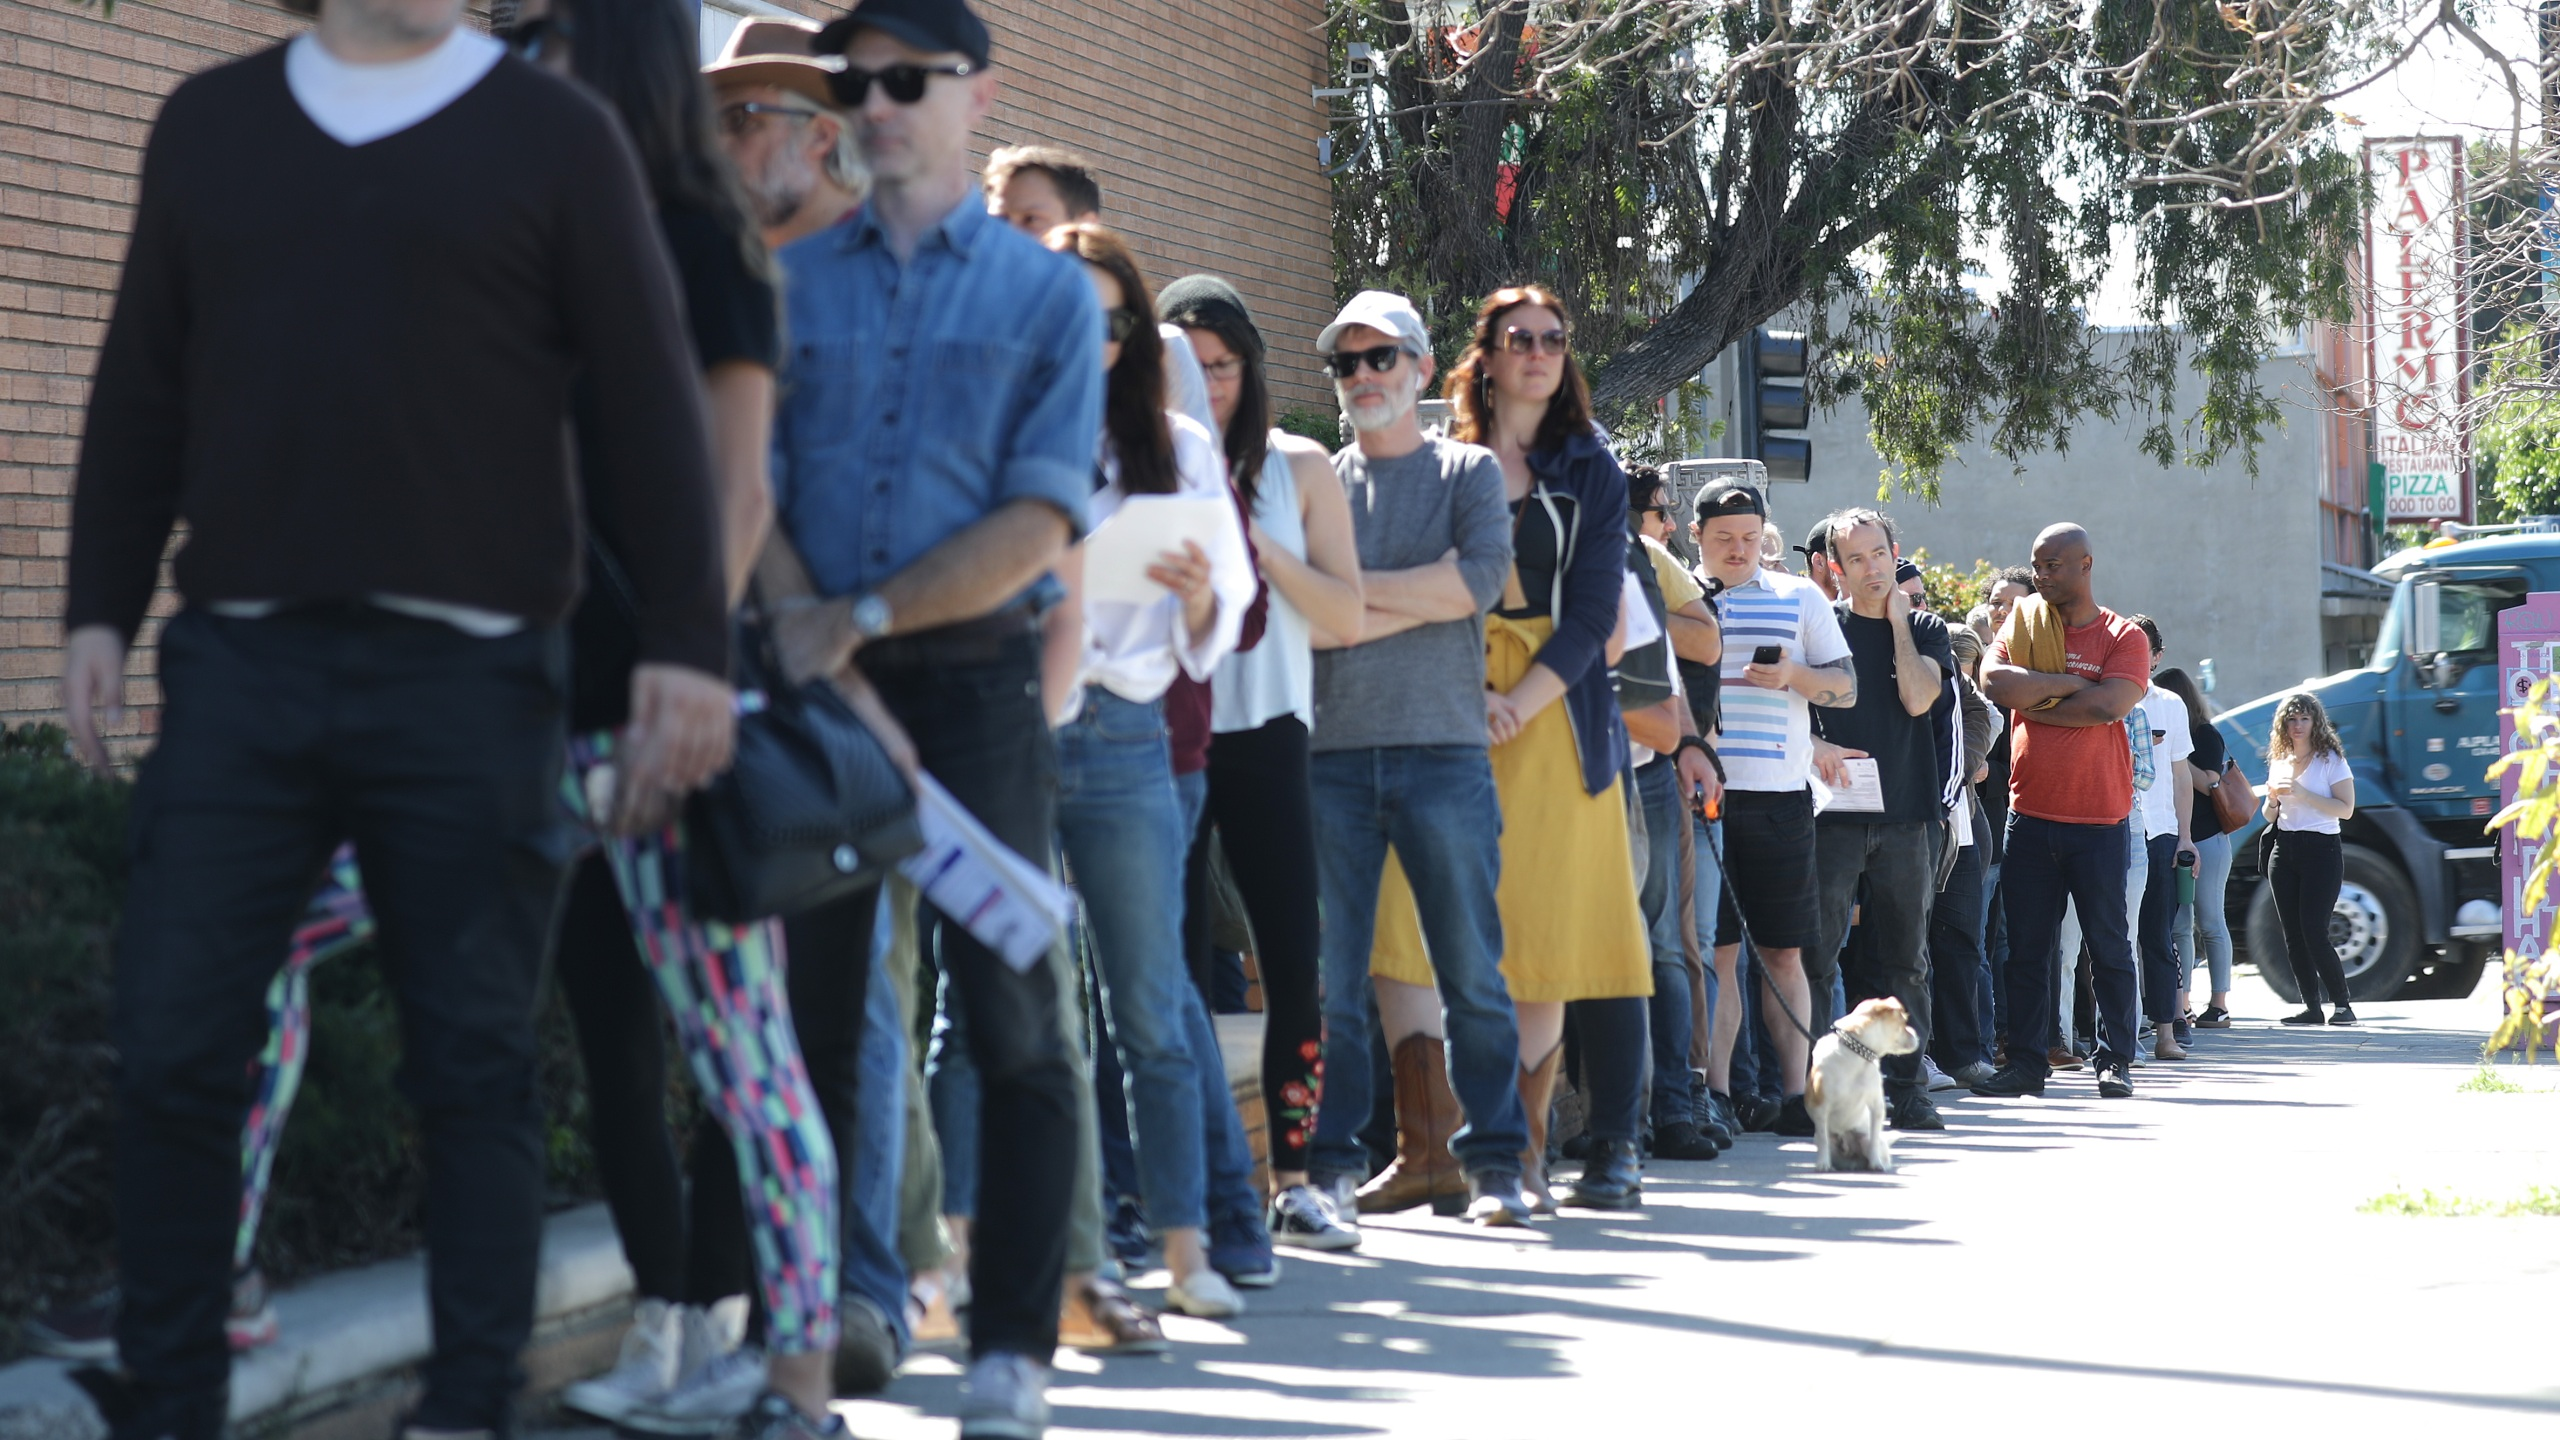 Voters wait in line to cast their ballots at a vote center at a Masonic Lodge in Los Angeles on March 3, 2020. (Mario Tama/Getty Images)